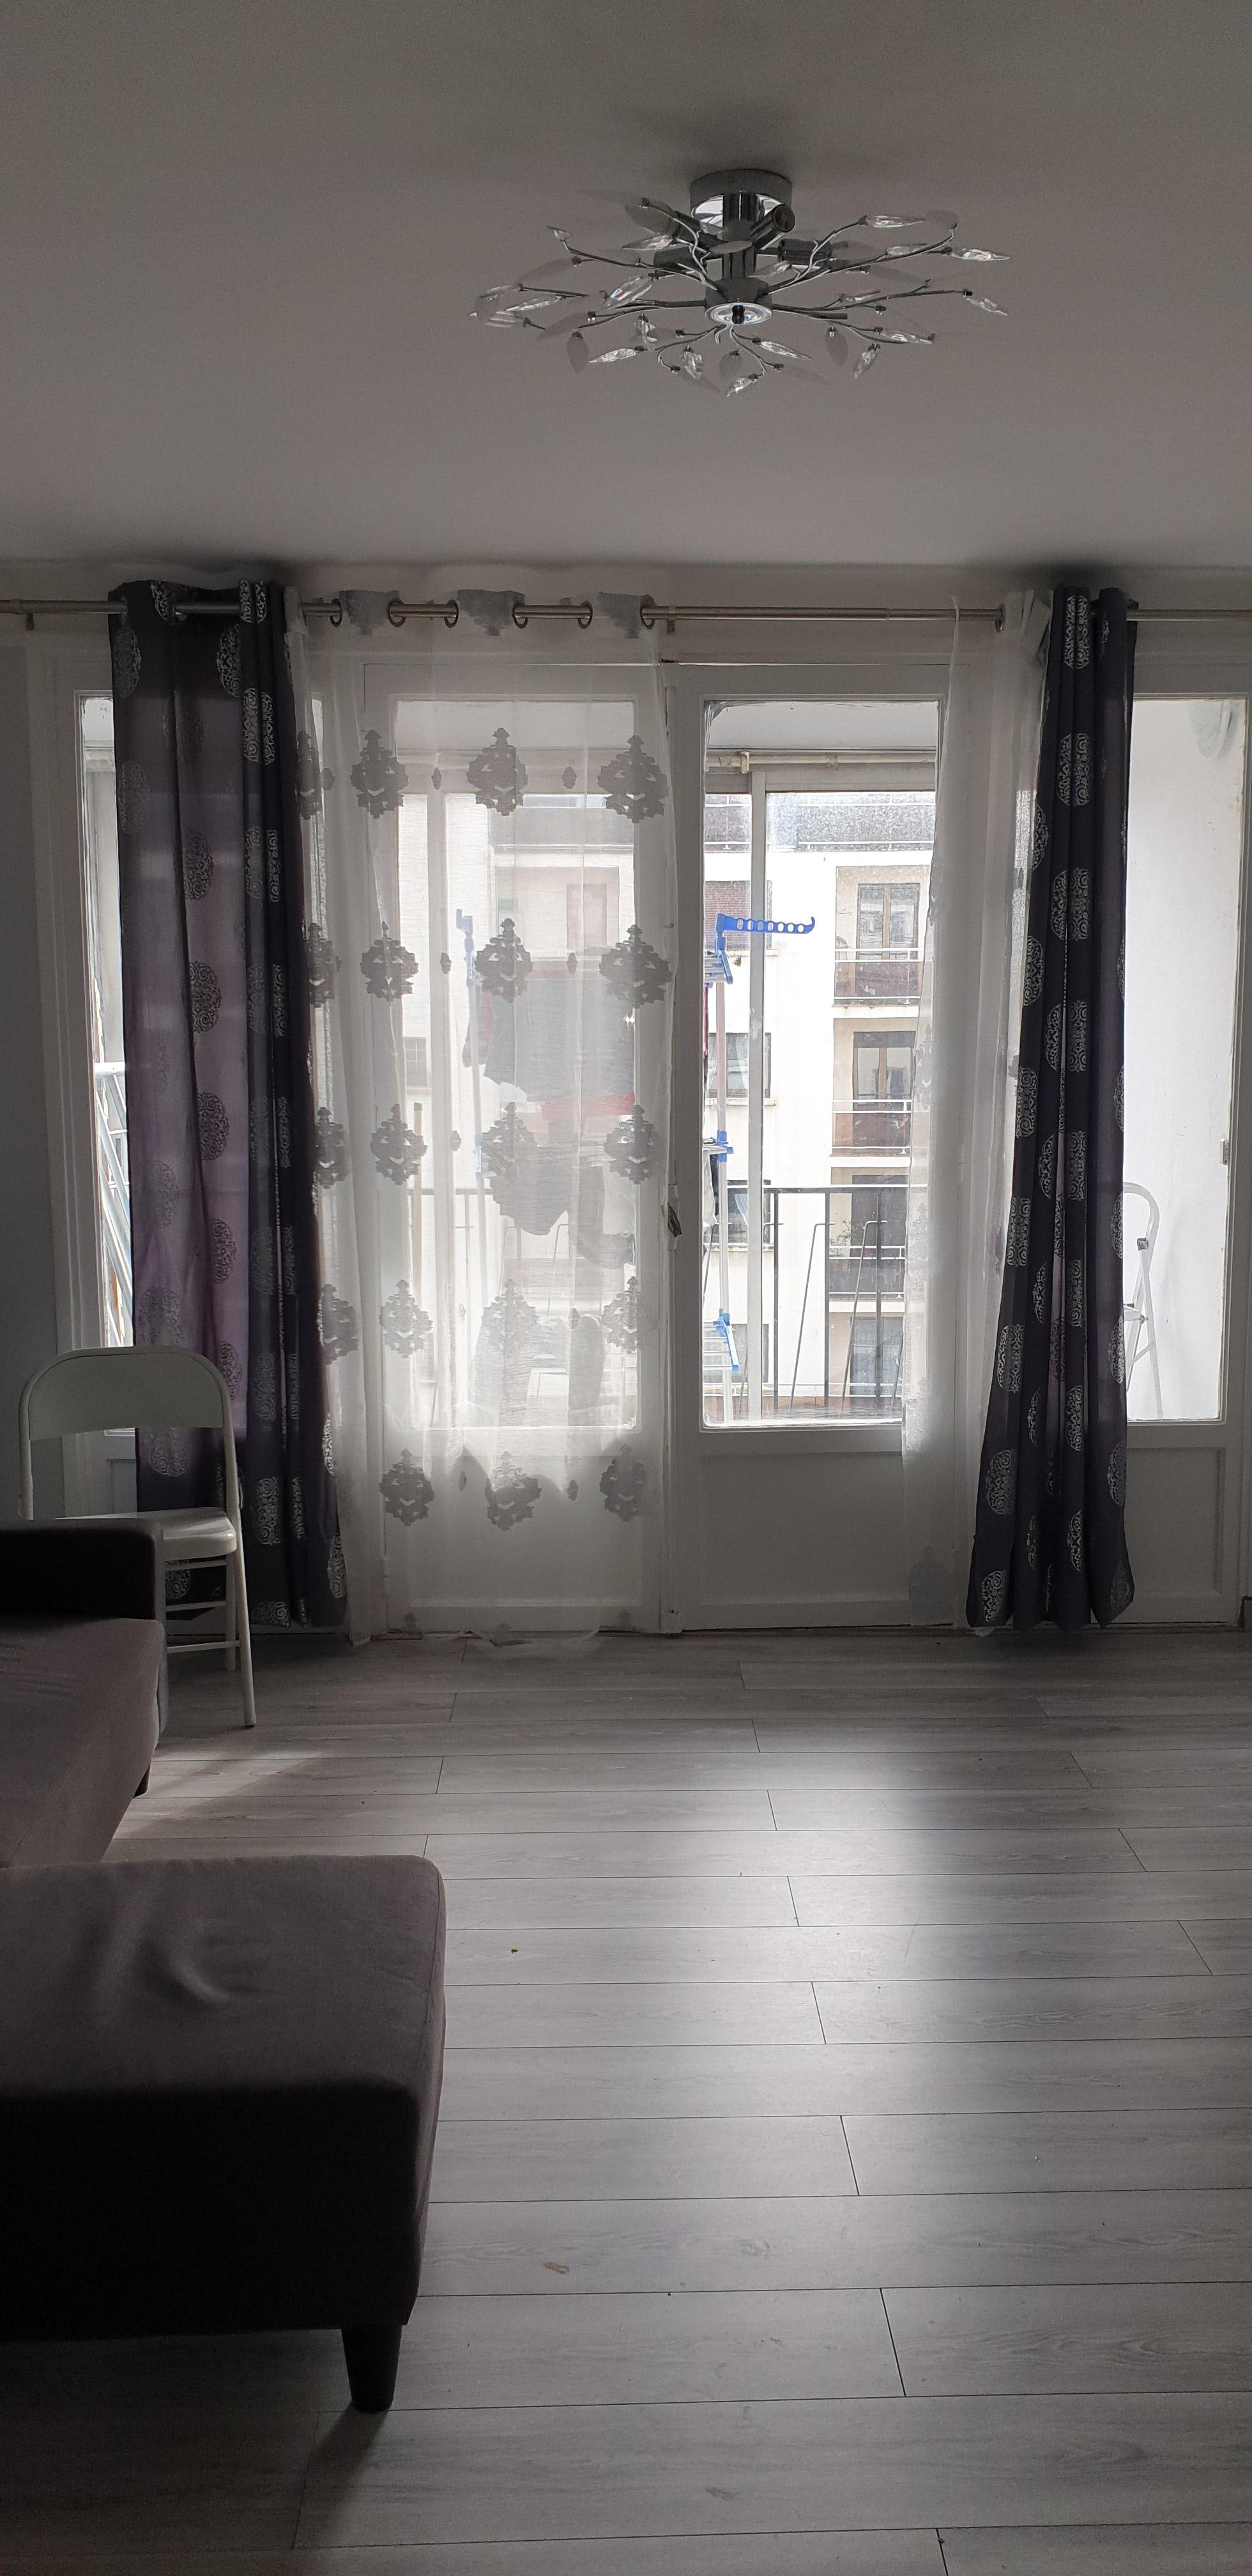 10a Rue Isidore Nerat, 93600 Aulnay-sous-Bois, France